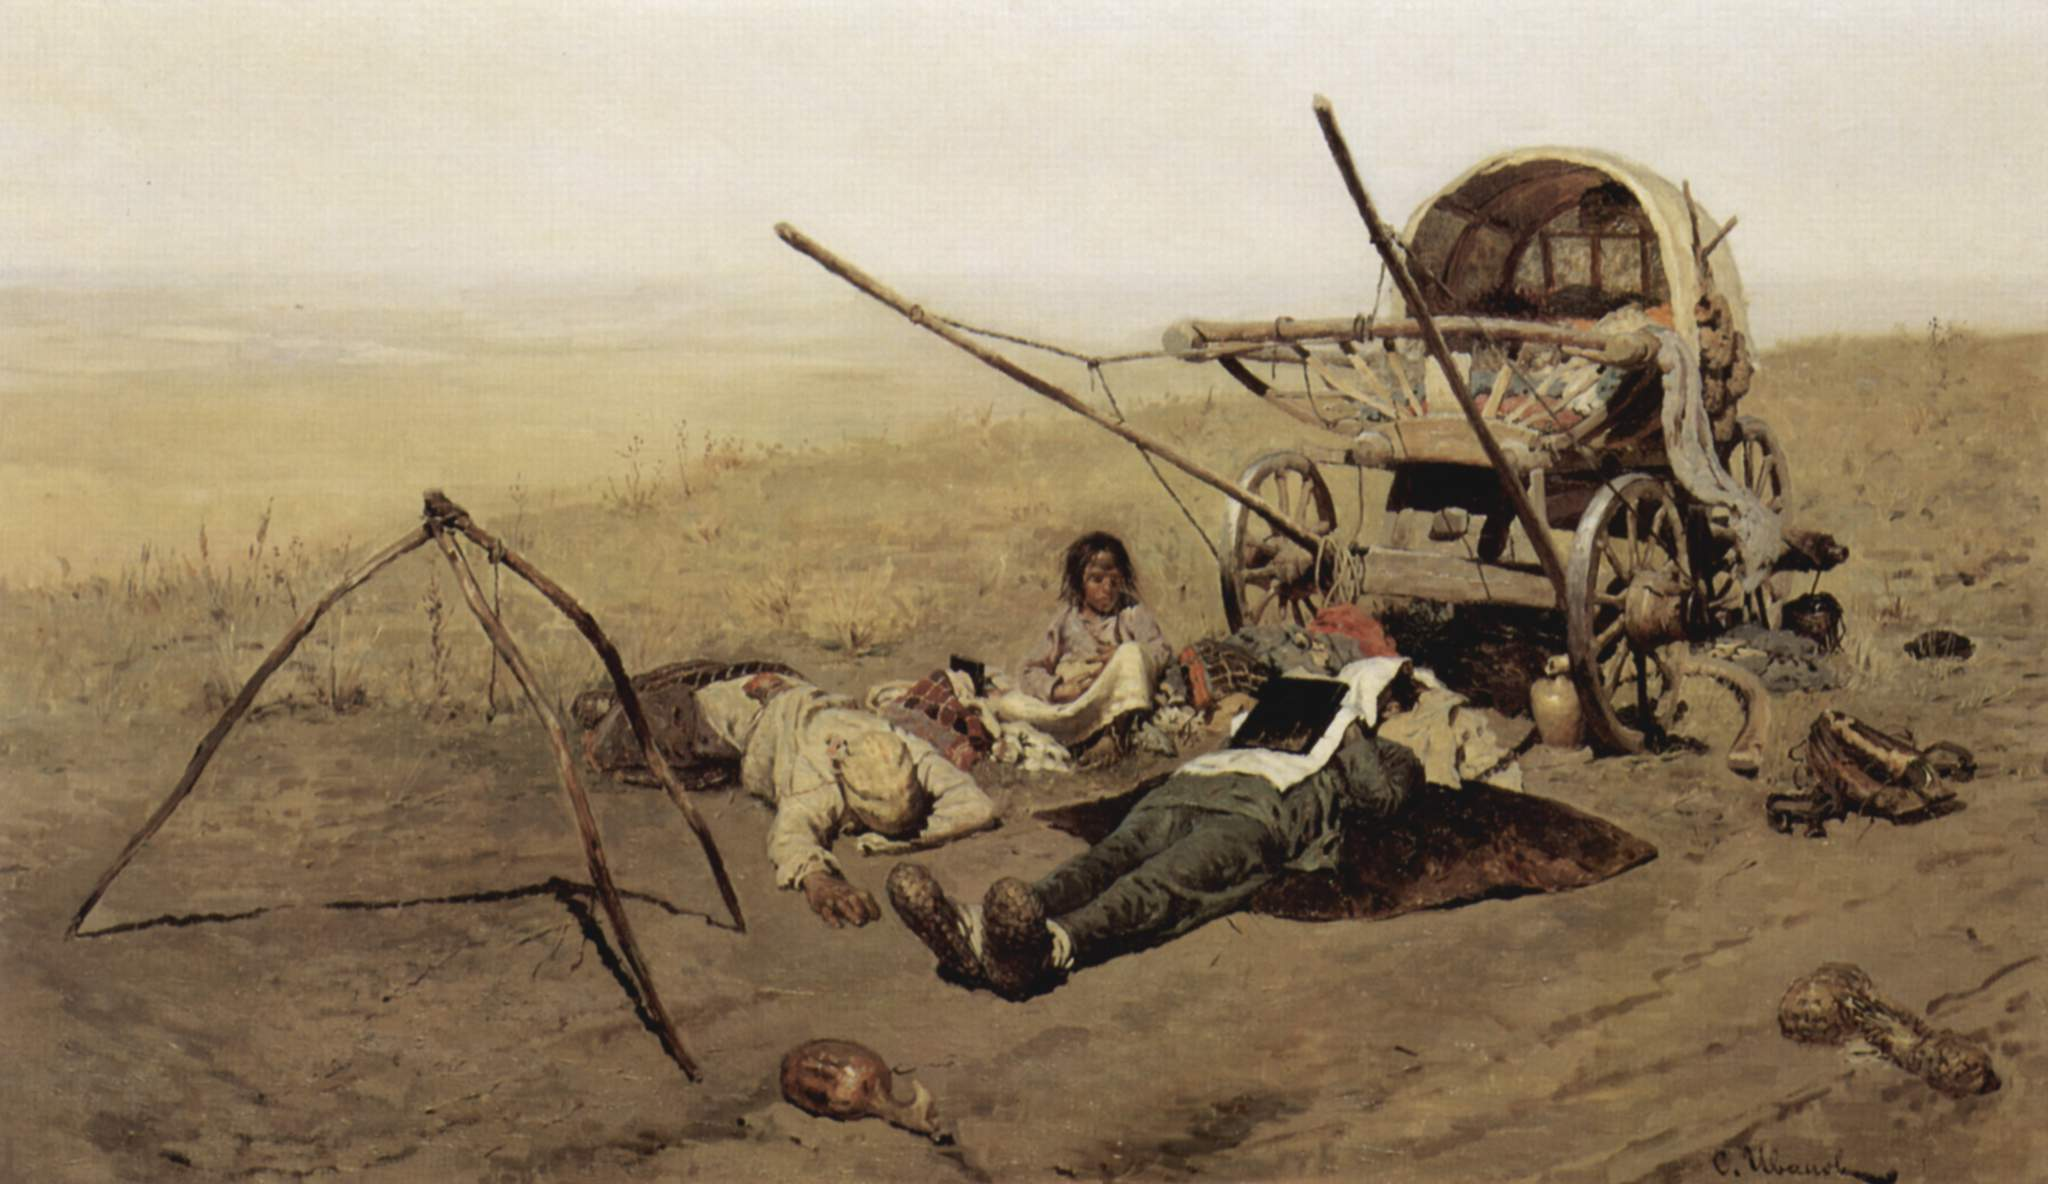 S. V. Ivanov. On the road. Death or a migrant. 1889